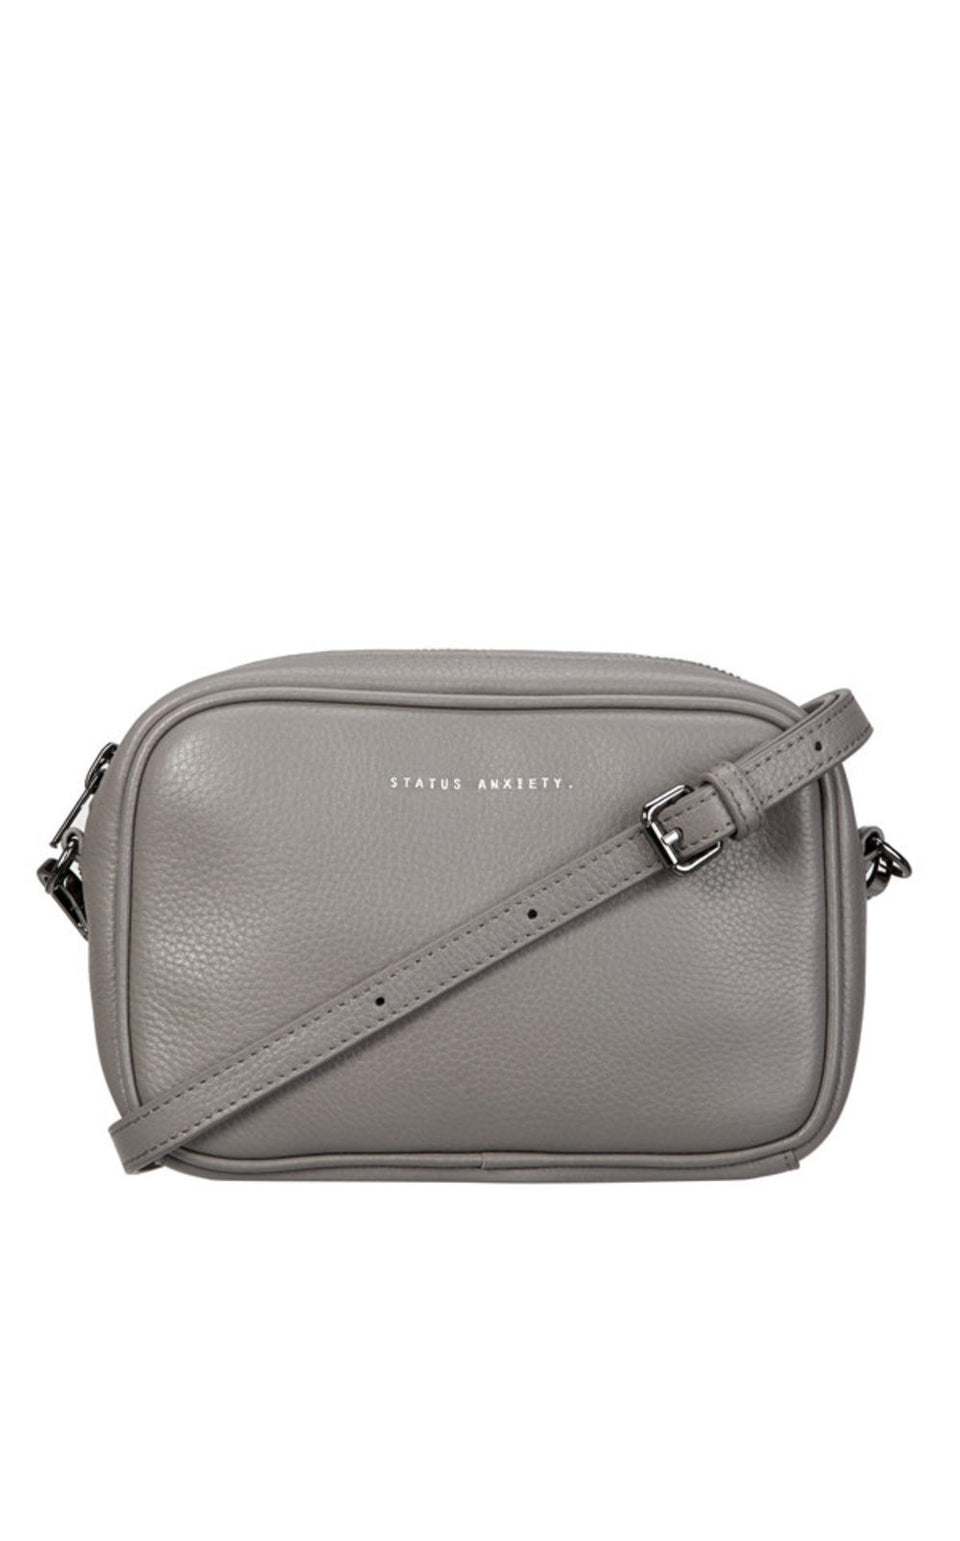 Status Anxiety Plunder Bag Light Grey - Stencil